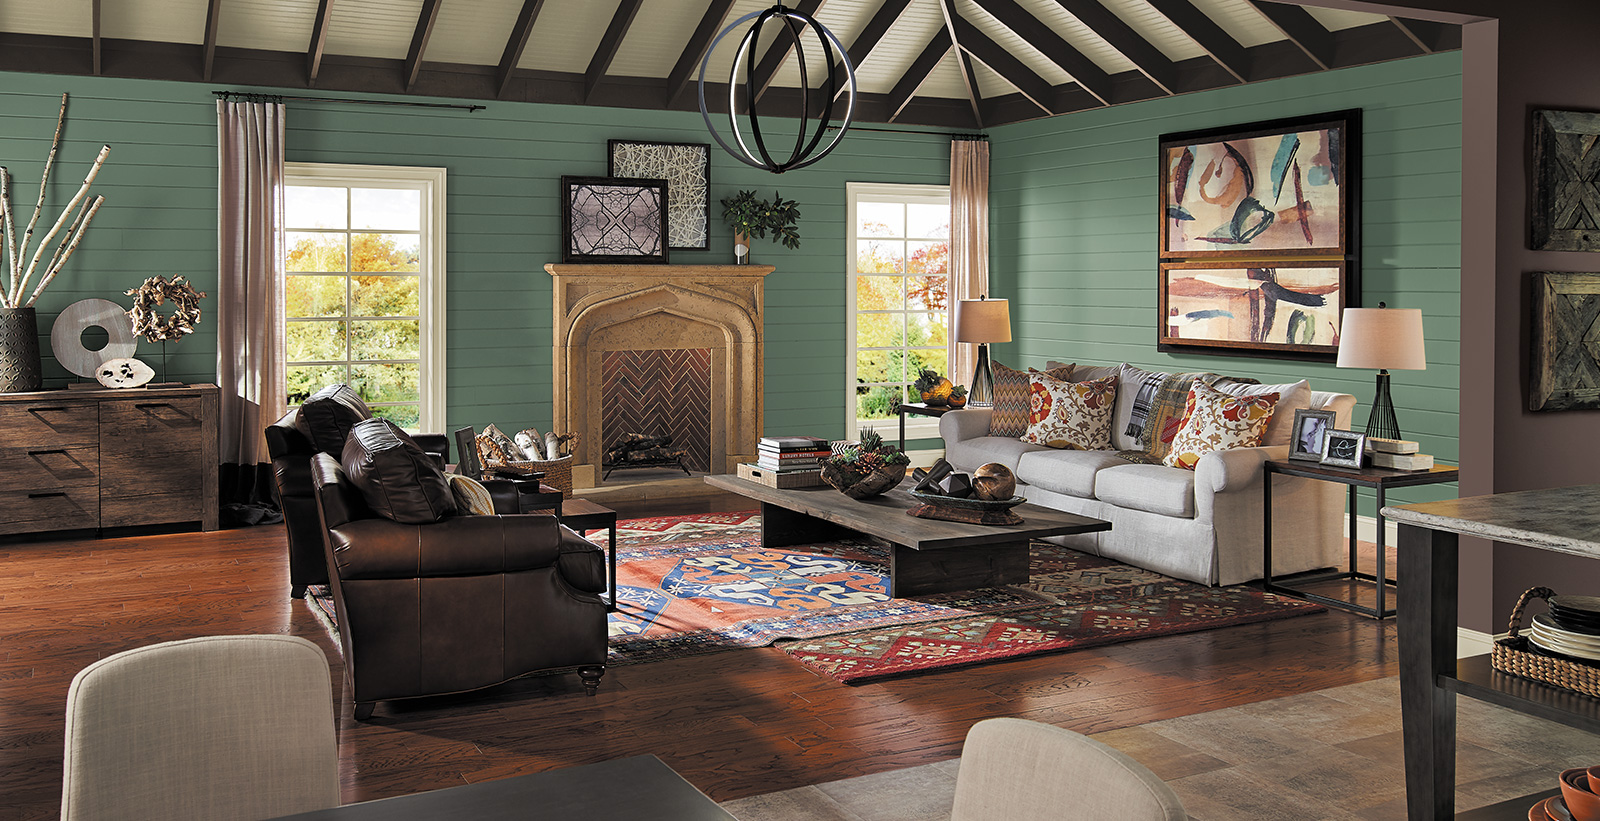 Open concept living room with muted green on walls, off white couch, dark brown leather chairs and dark wood coffee table